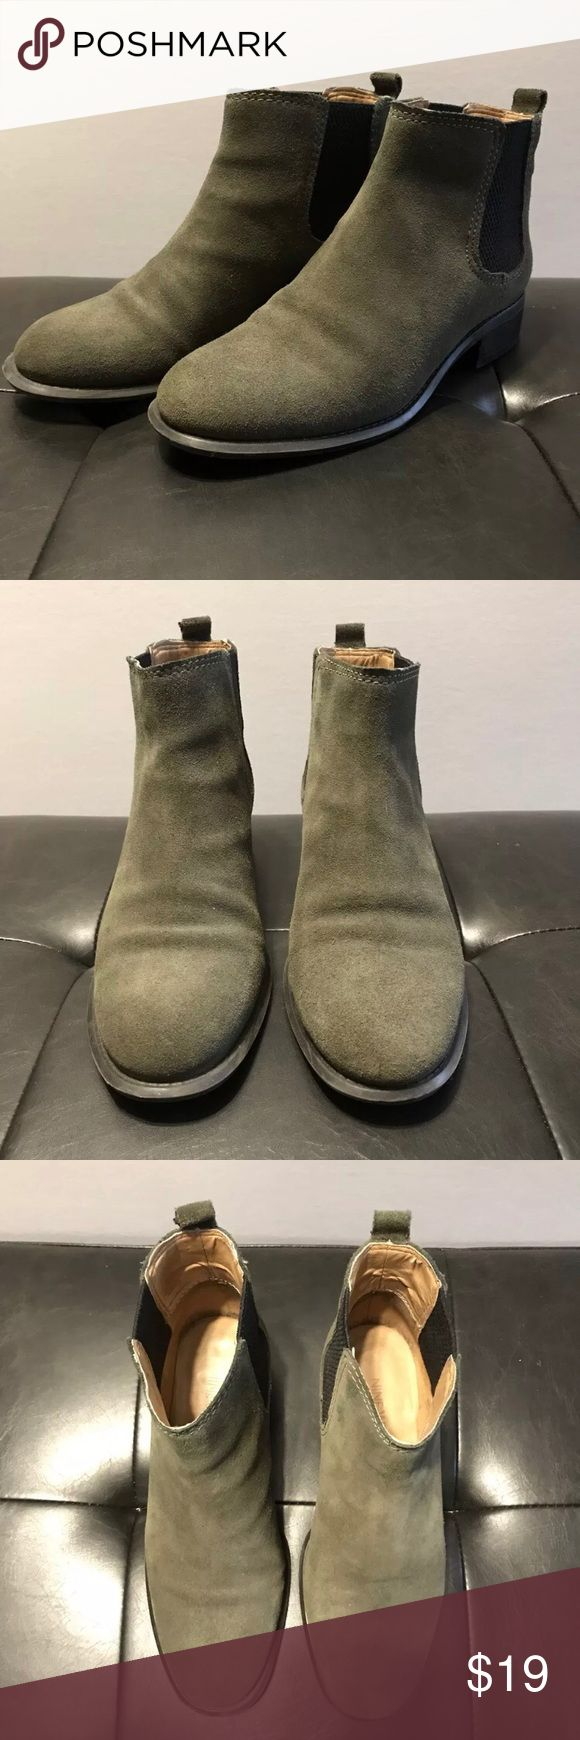 "Nine West Suede Leather Chelsea Boots - Olive Nine West - Women's ""Jara"" Suede Leather Chelsea Boots - Olive Size US 5 1/2  Slightly Pre-Owned with very little wear. Nine West Shoes Ankle Boots & Booties"